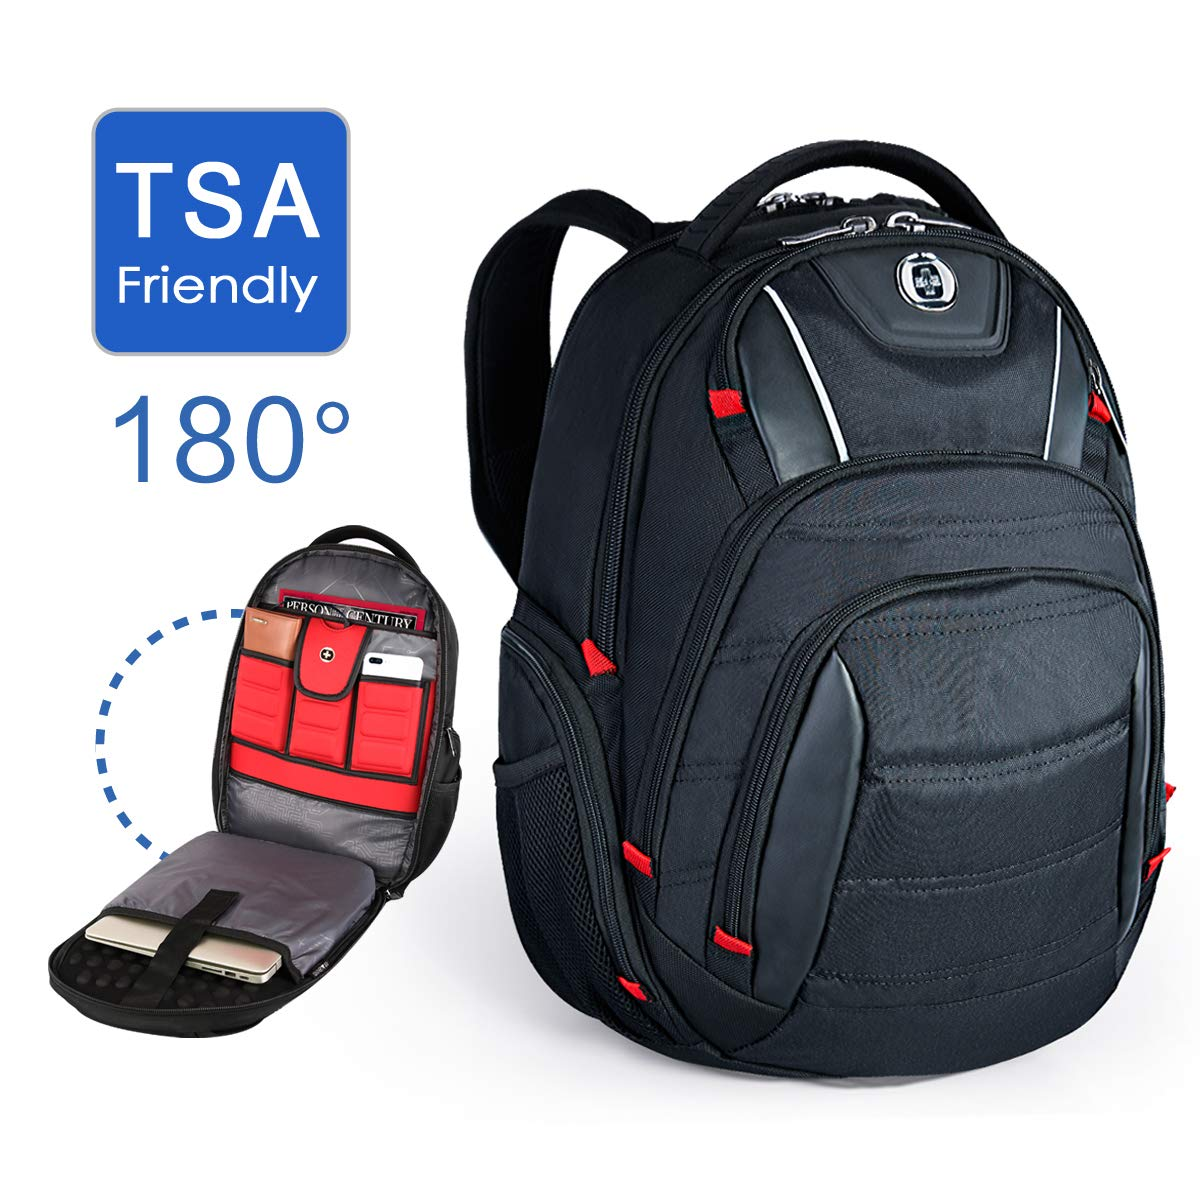 Swissdigital Laptop Backpack, Busniess Backpack USB Port,RFID Protection TSA Smart Scan Travel Fits Under 15.6-Inch Laptop Man, Black J14B-1G